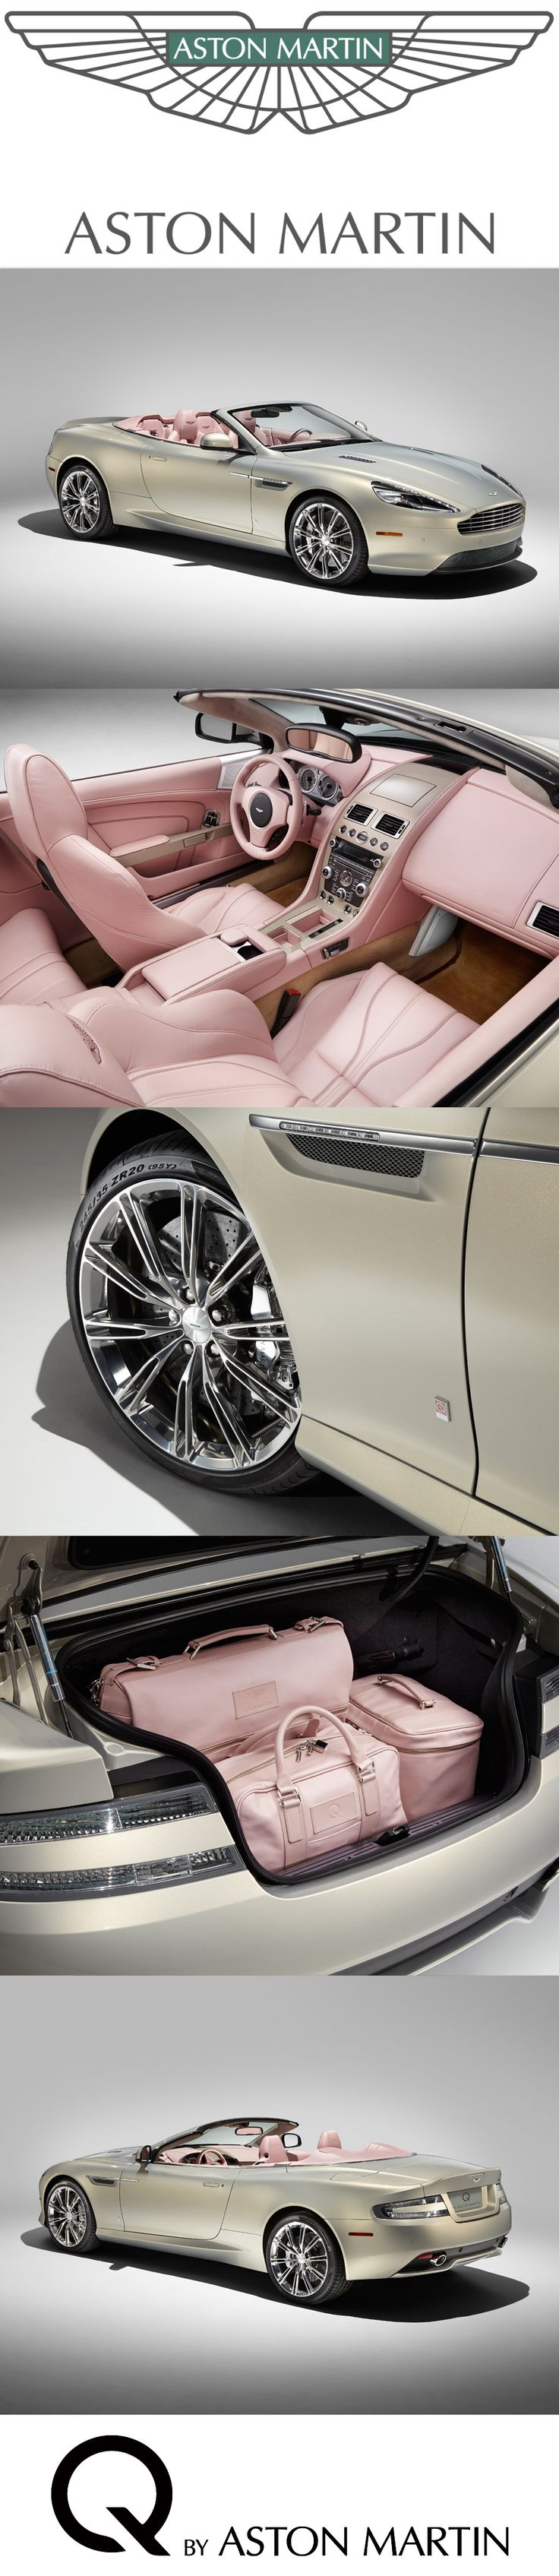 A bespoke commission to be showcased at Pebble Beach® Automotive Week 2014. This luxurious Q DB9 Volante is inspired by fashion and given a distinct character by its special blush pearl leather interior paired with a coolness of Piano Ice Mocha seen on full waterfall with matching door grabs.